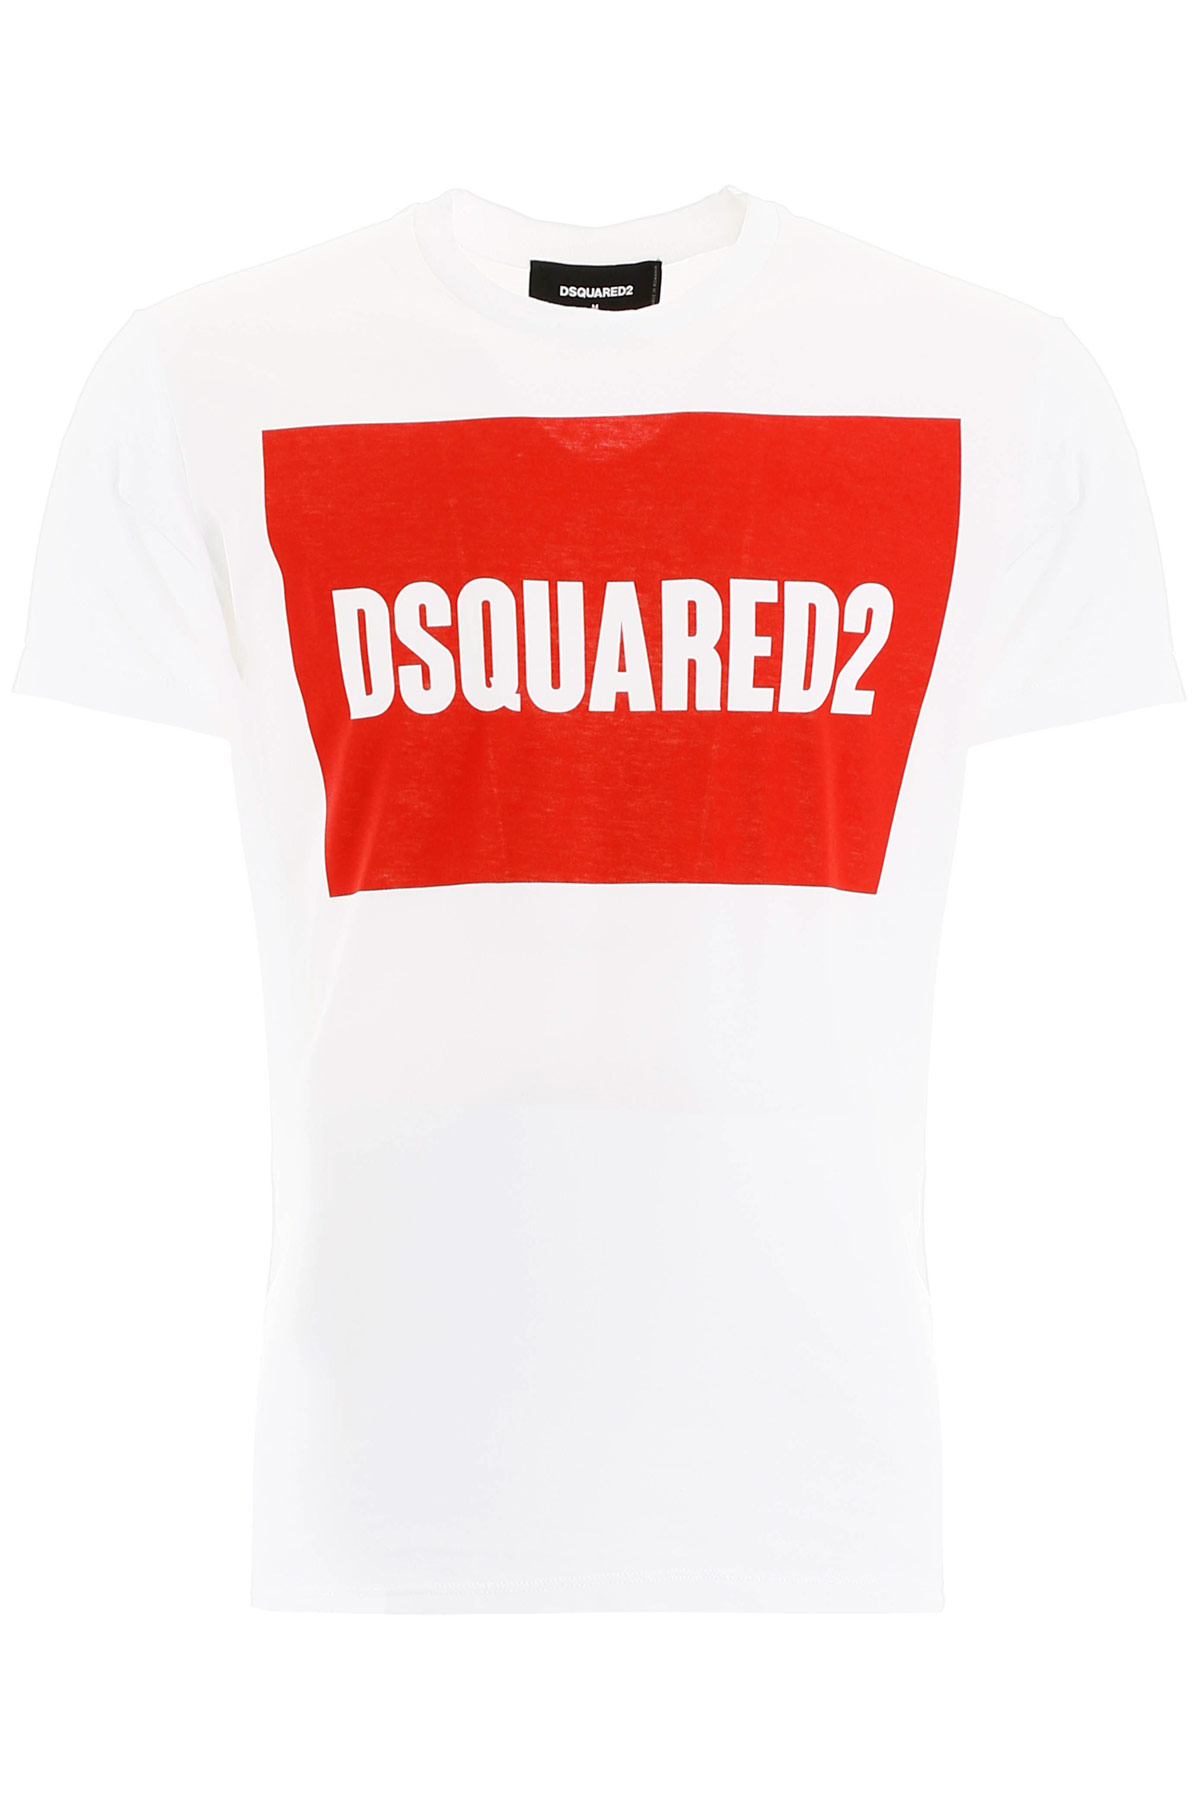 DSQUARED2 LOGO BOX PRINT T-SHIRT XL White, Red Cotton